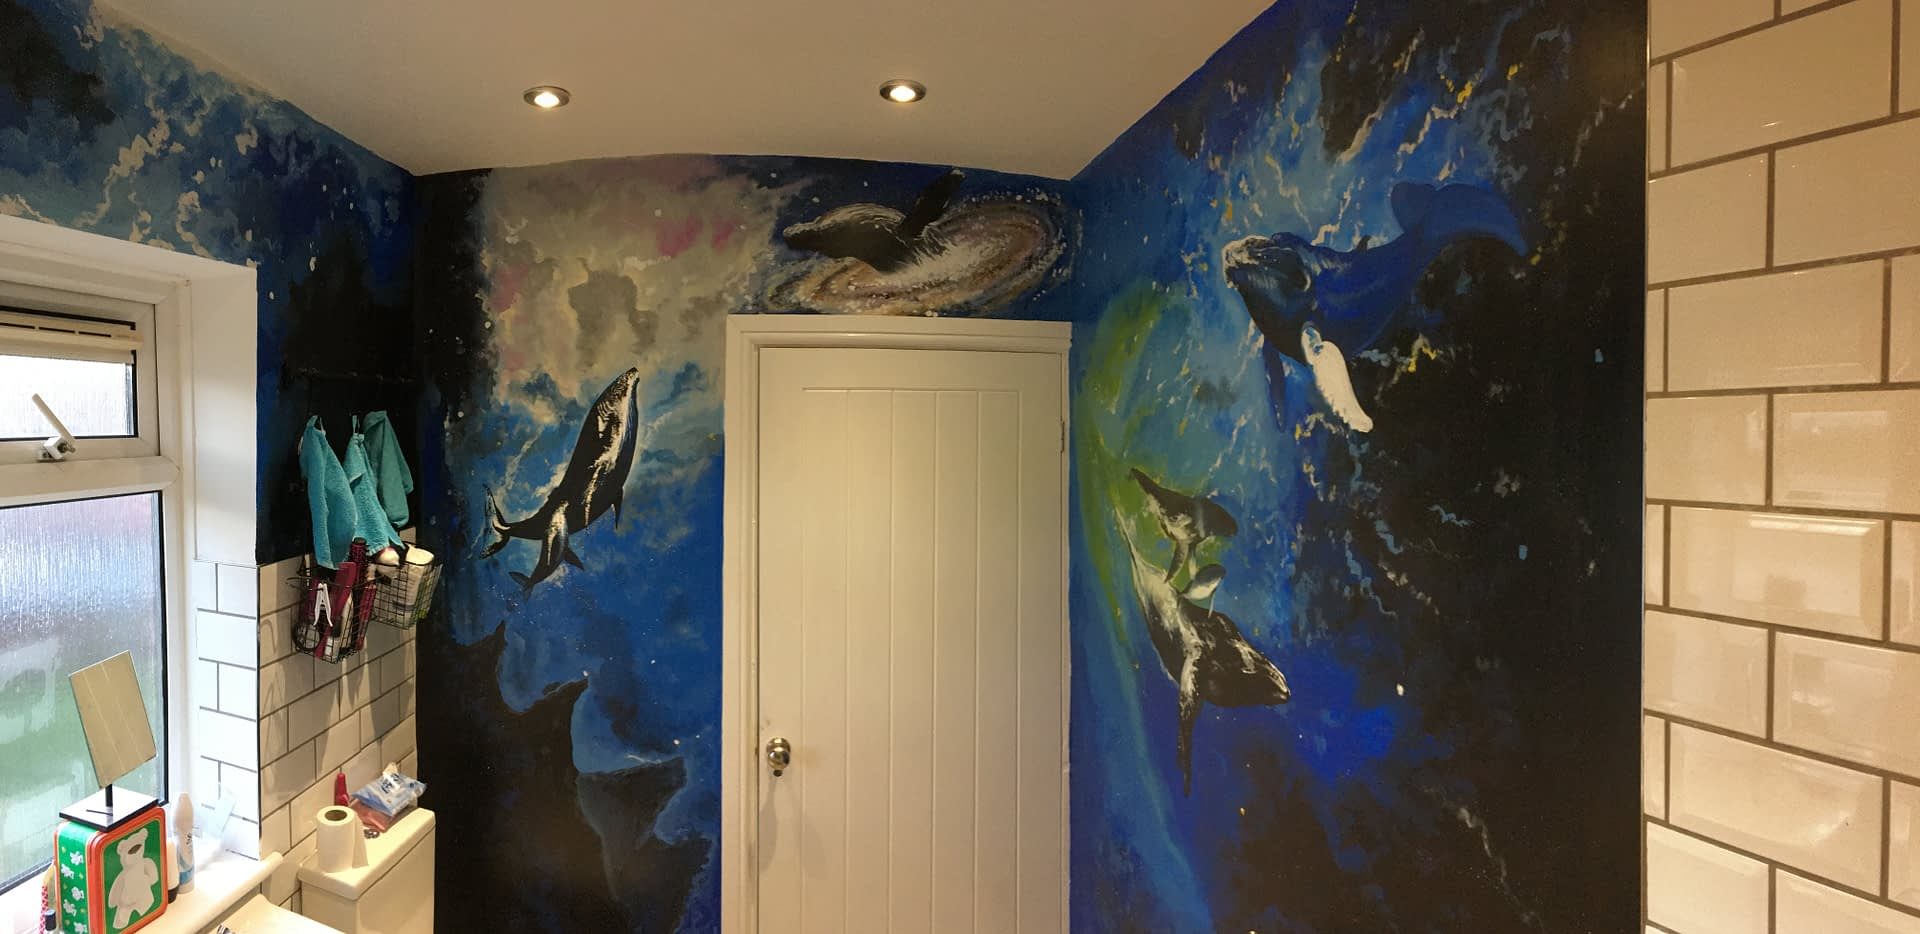 Whales in space